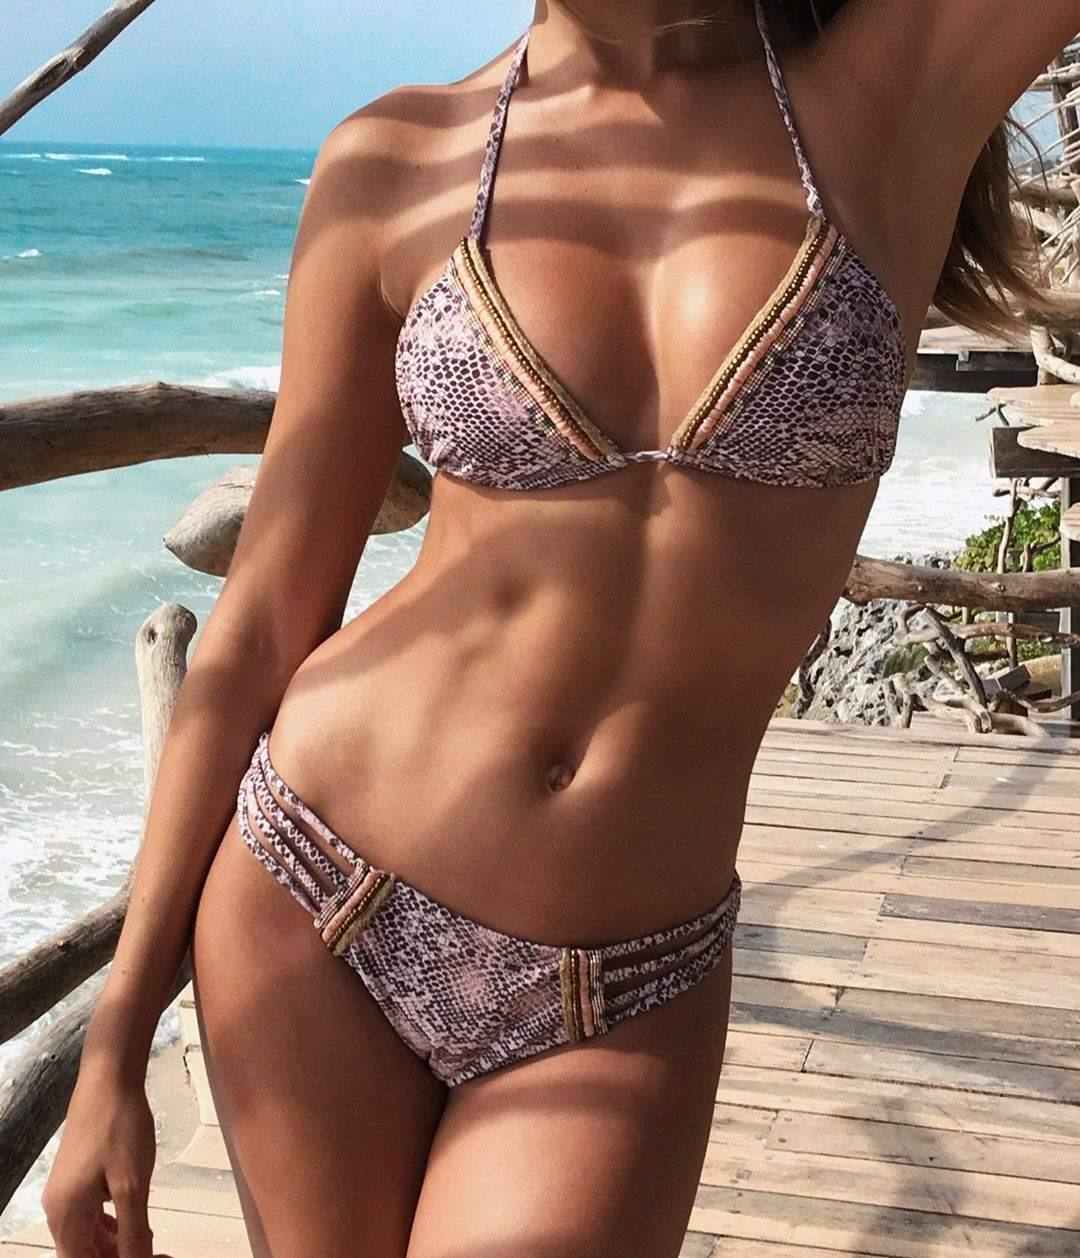 Josephine Skriver Hot Toned Body In Bikini